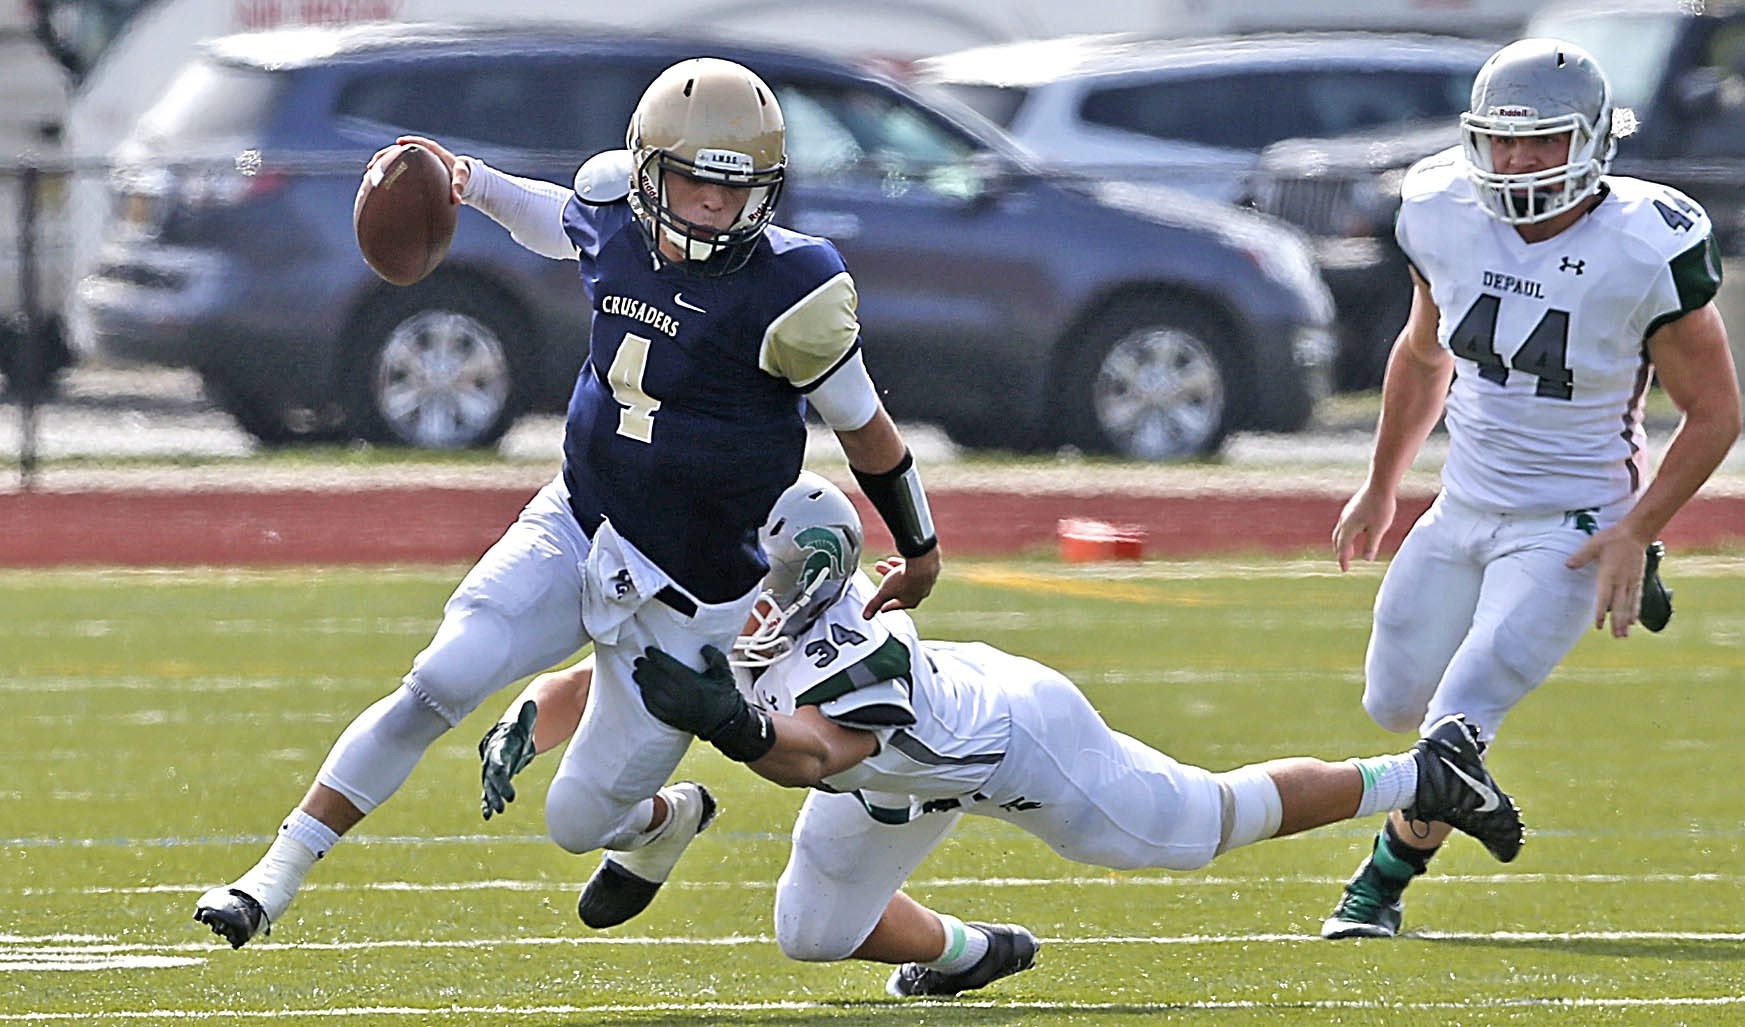 Canisius QB Tyler Stranahan slips away from defender Vinny DePalma of DePaul Catholic during Saturday's game in West Seneca.